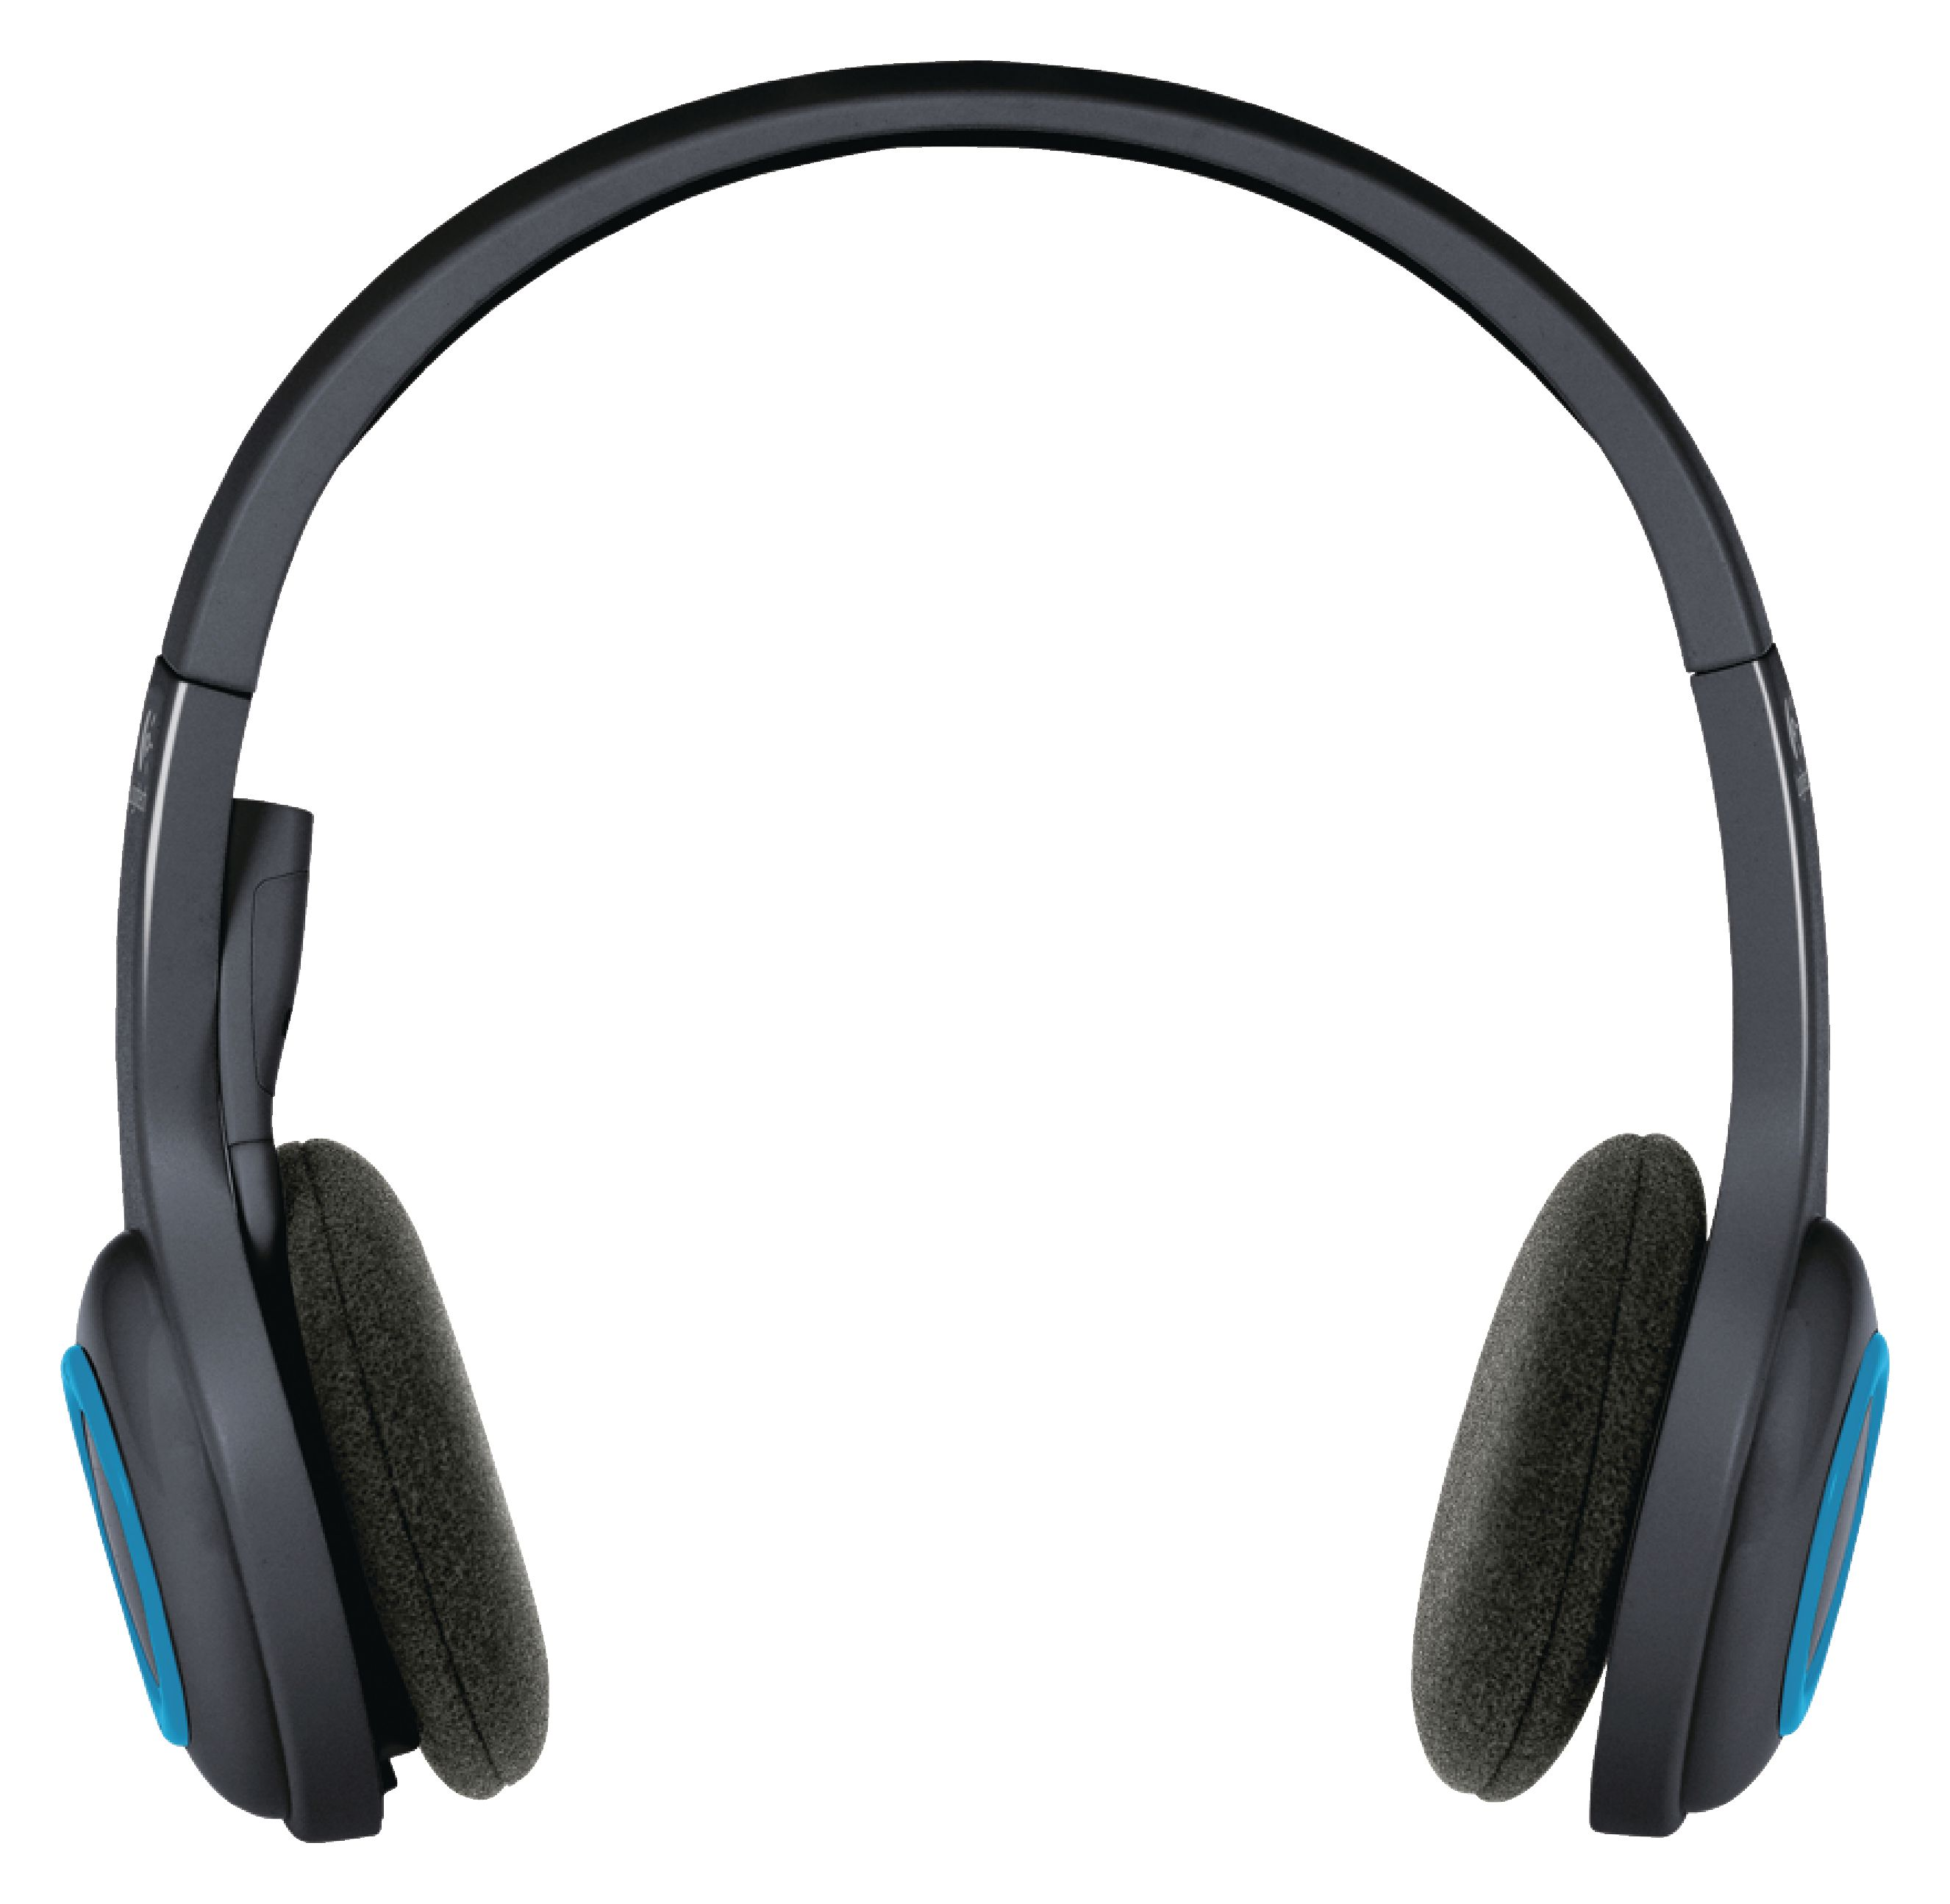 Image of   Headset ANC (Active Noise Cancelling) / Foldable On-Ear Bluetooth Indbygget Mikrofon Sort